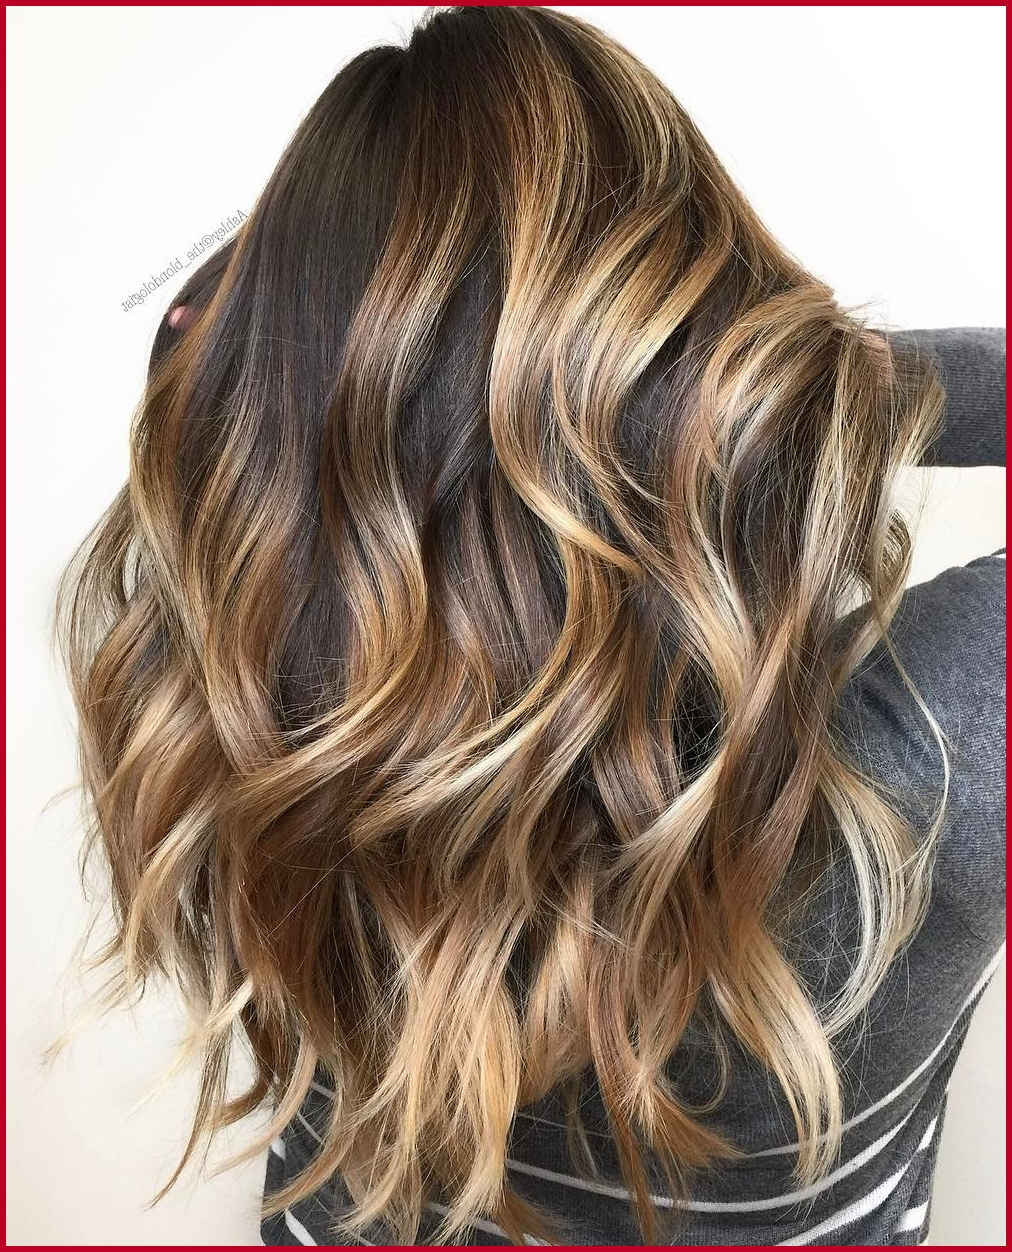 Short Hairstyles For Wavy Hair 2017 137243 Hairstyles And Haircuts Inside Short Haircuts For Wavy Thick Hair (View 14 of 25)